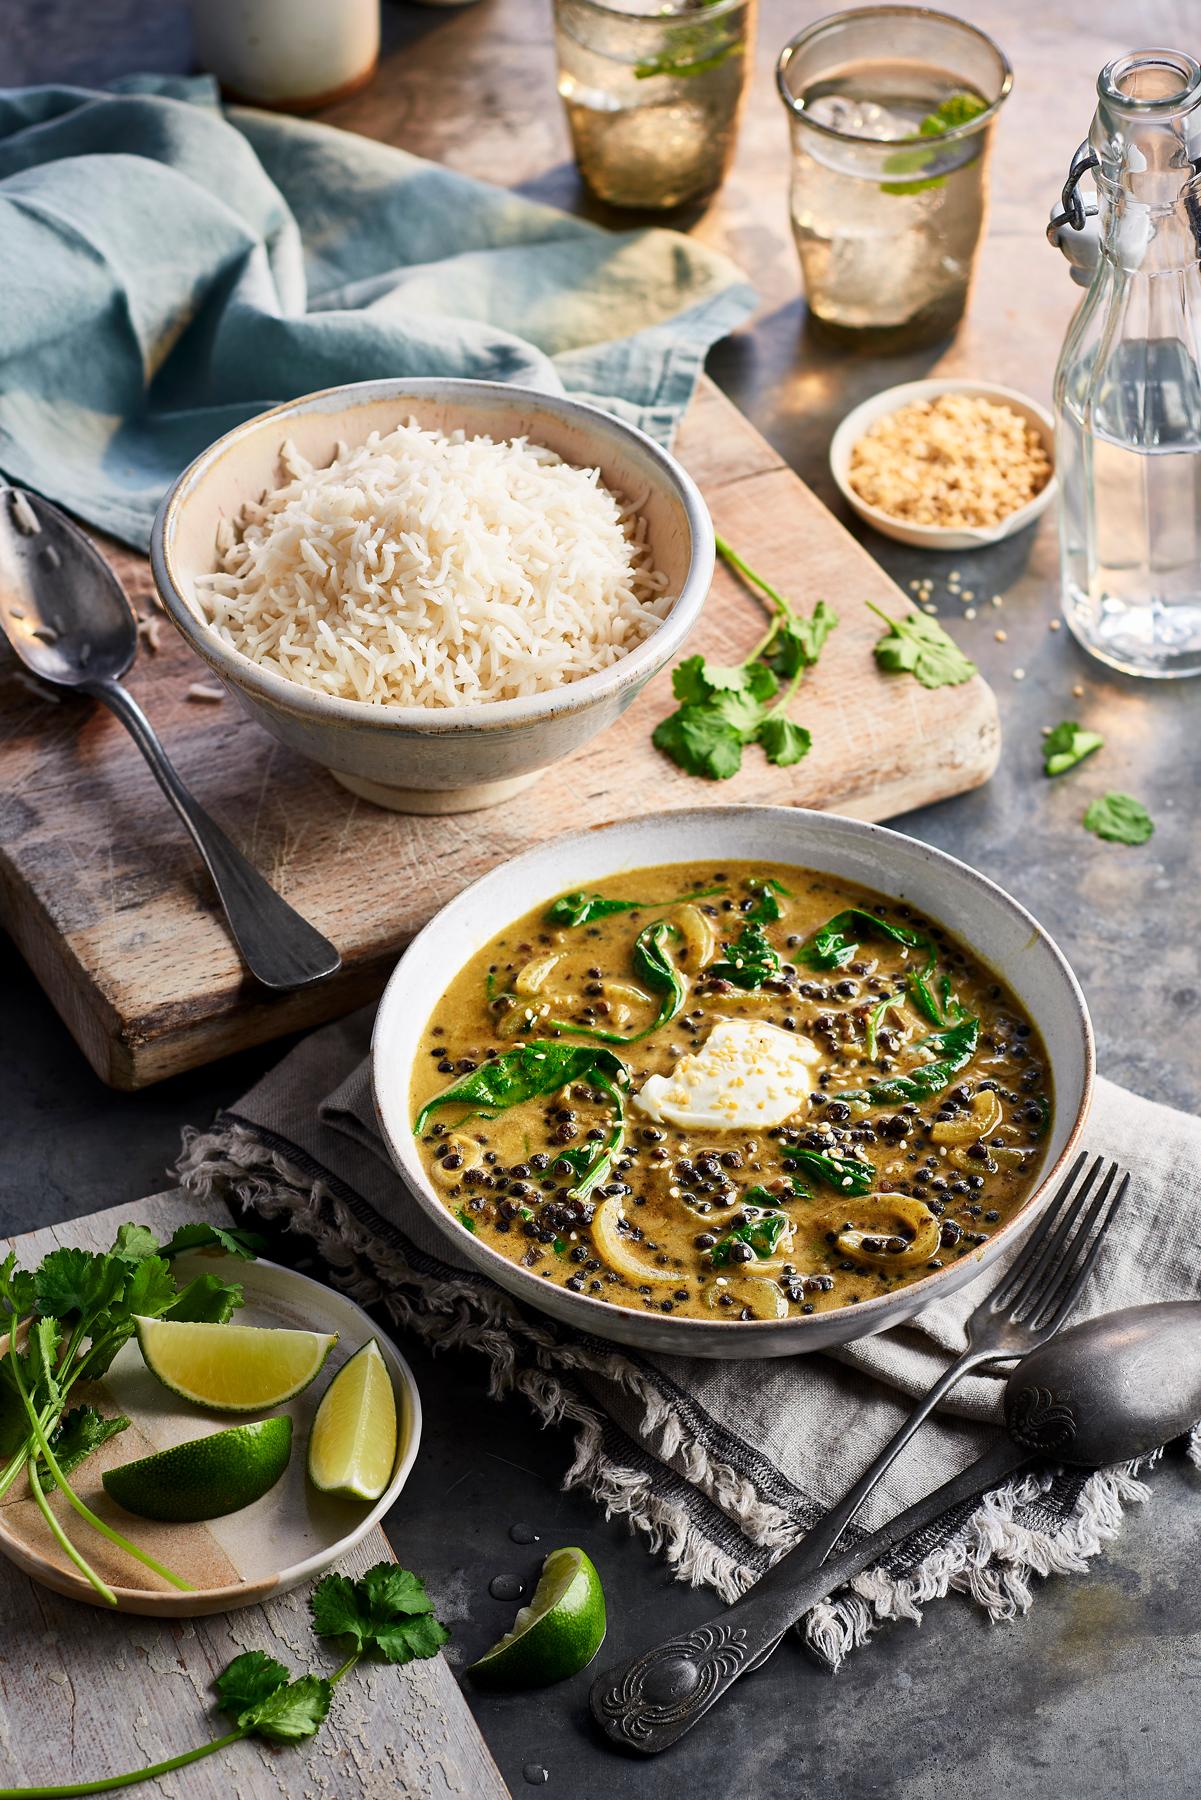 Philadelphia curry and rice dish by CliQQ Studios